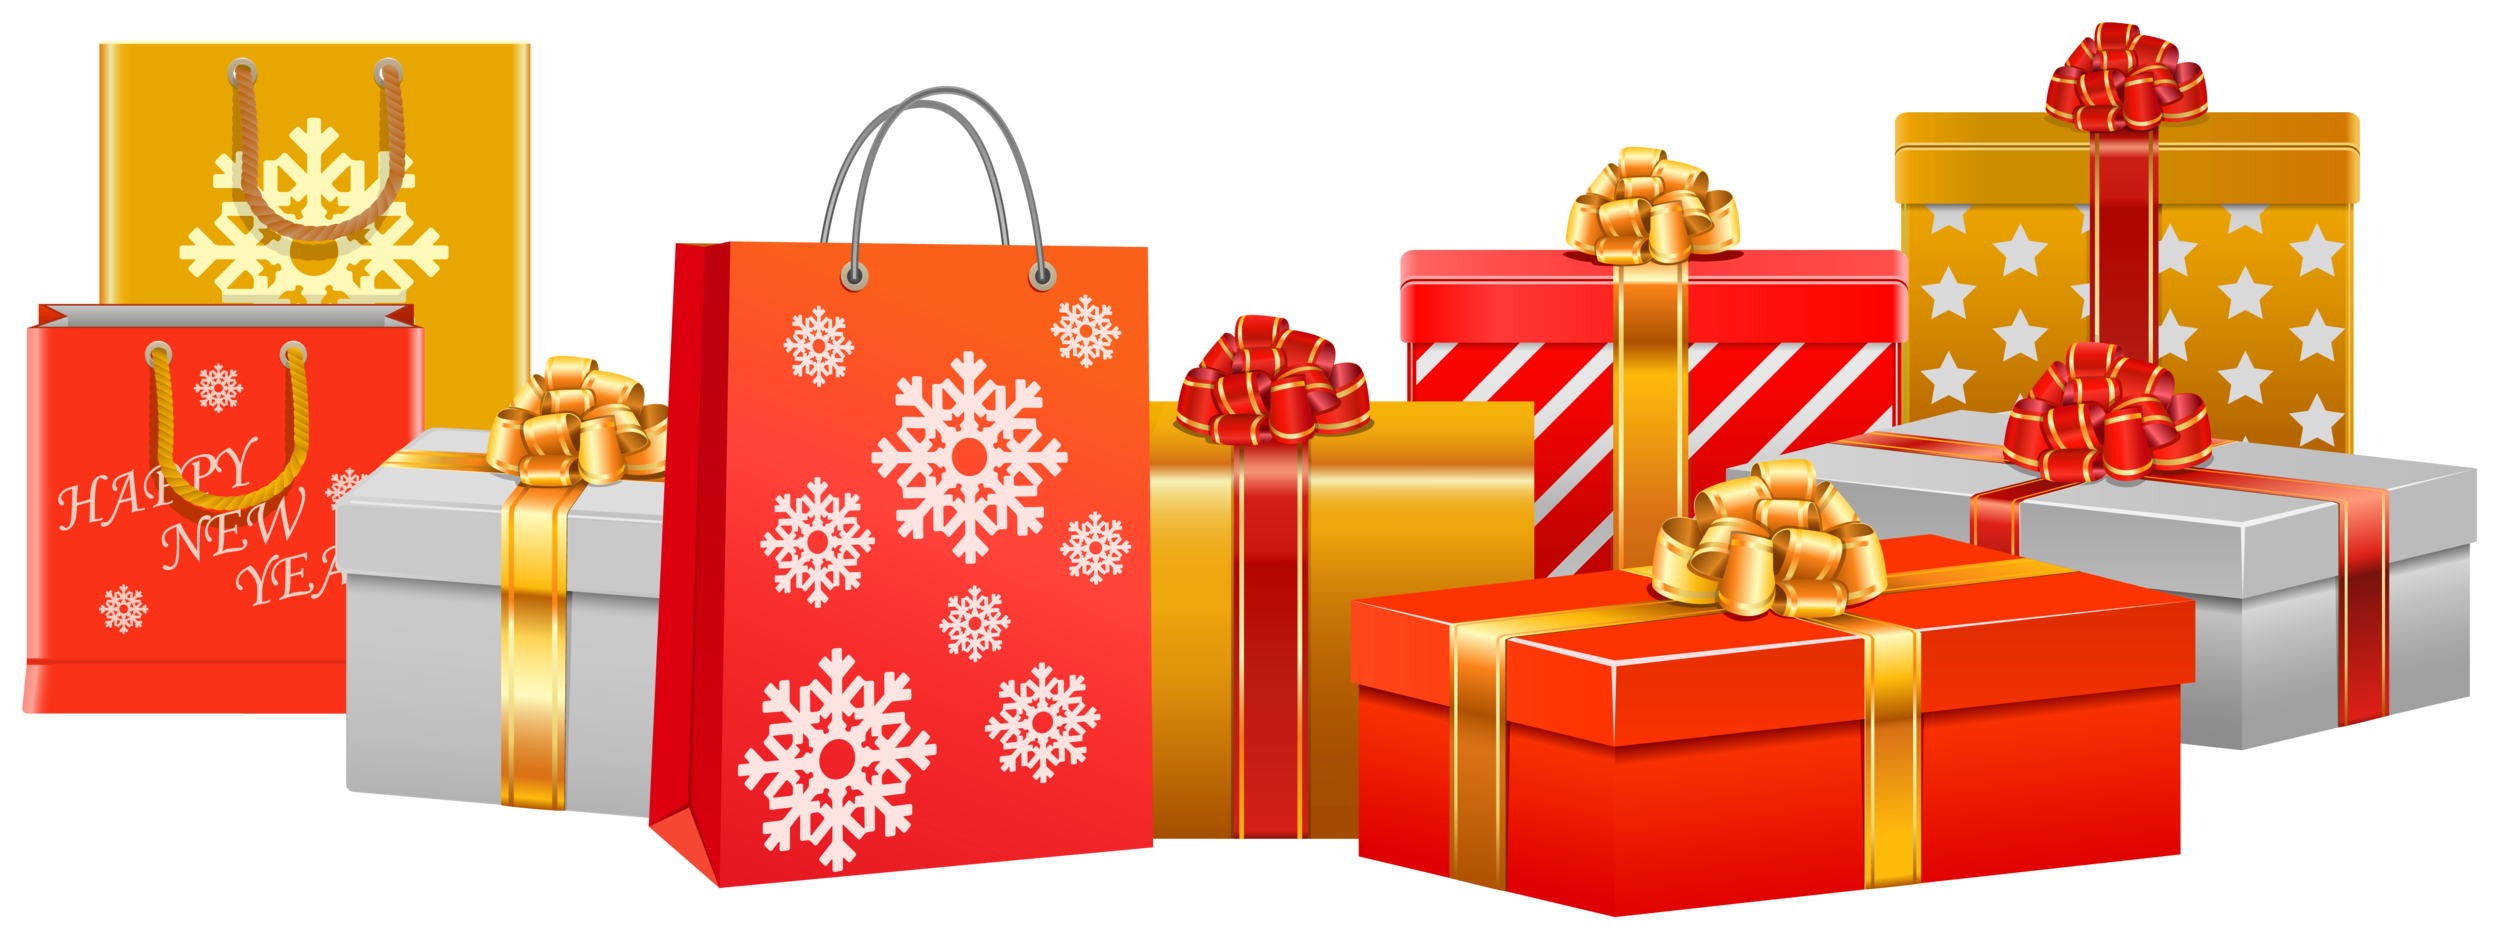 9c8ea19cb00409248a46ec10aadbd4ec_christmas-gifts-png-clipart-image-gallery-yopriceville-high-christmas-gifts-clipart-free_6036-2262.png